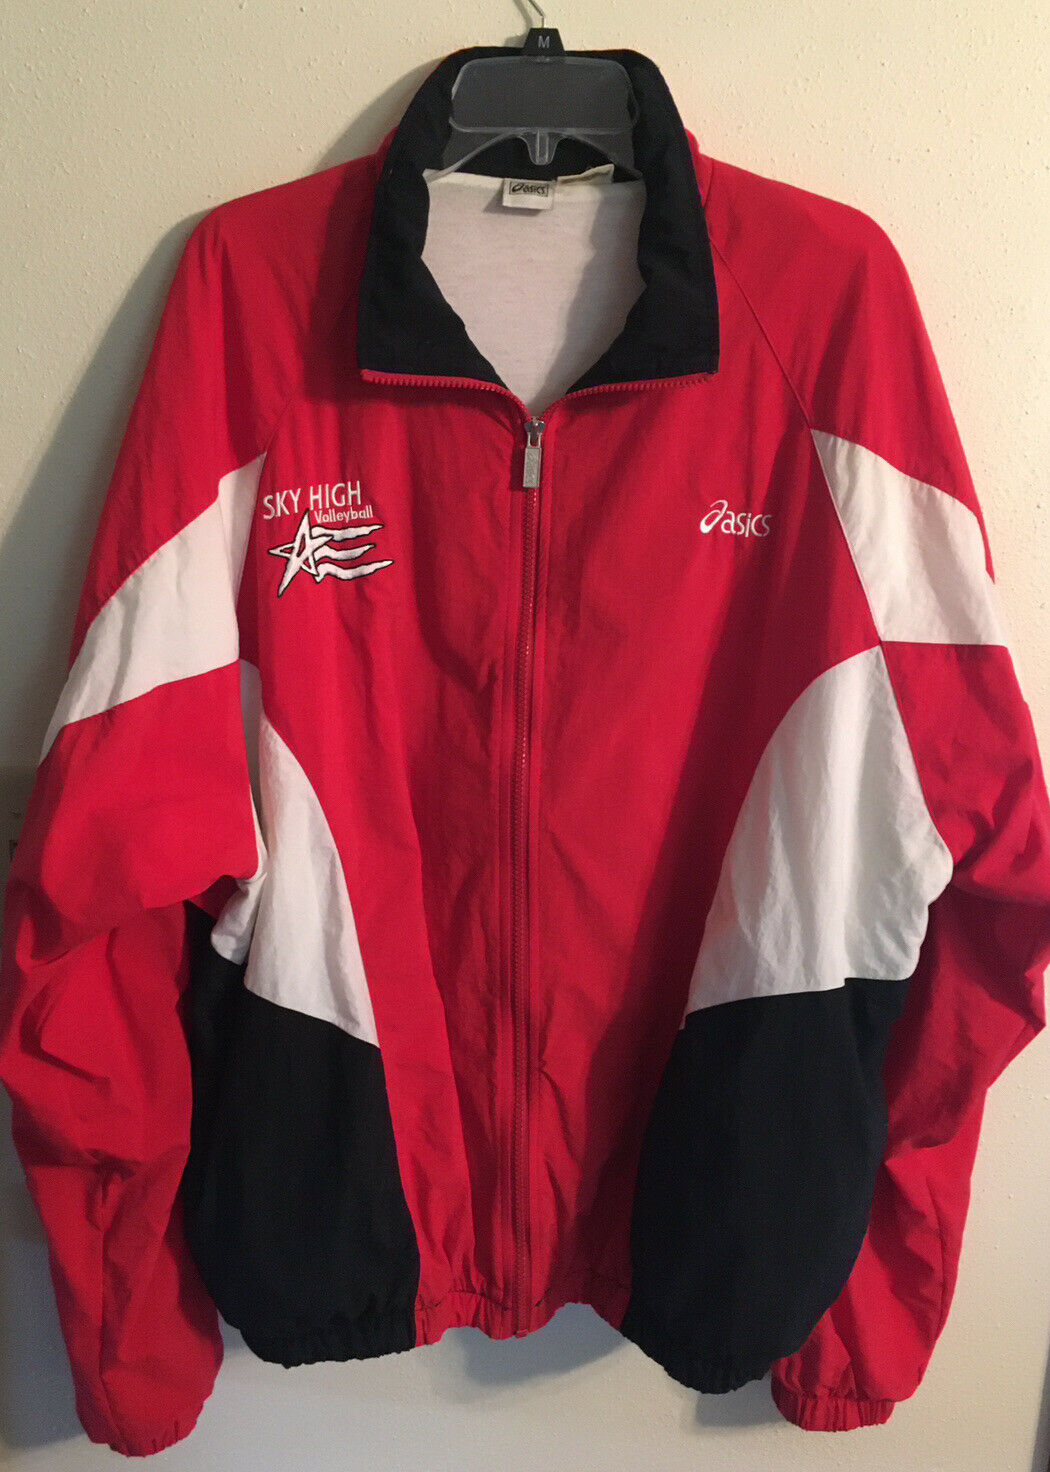 ASICS Woman's Sky High Club Volleyball Jacket Red Black Light Weight Size XL!!!